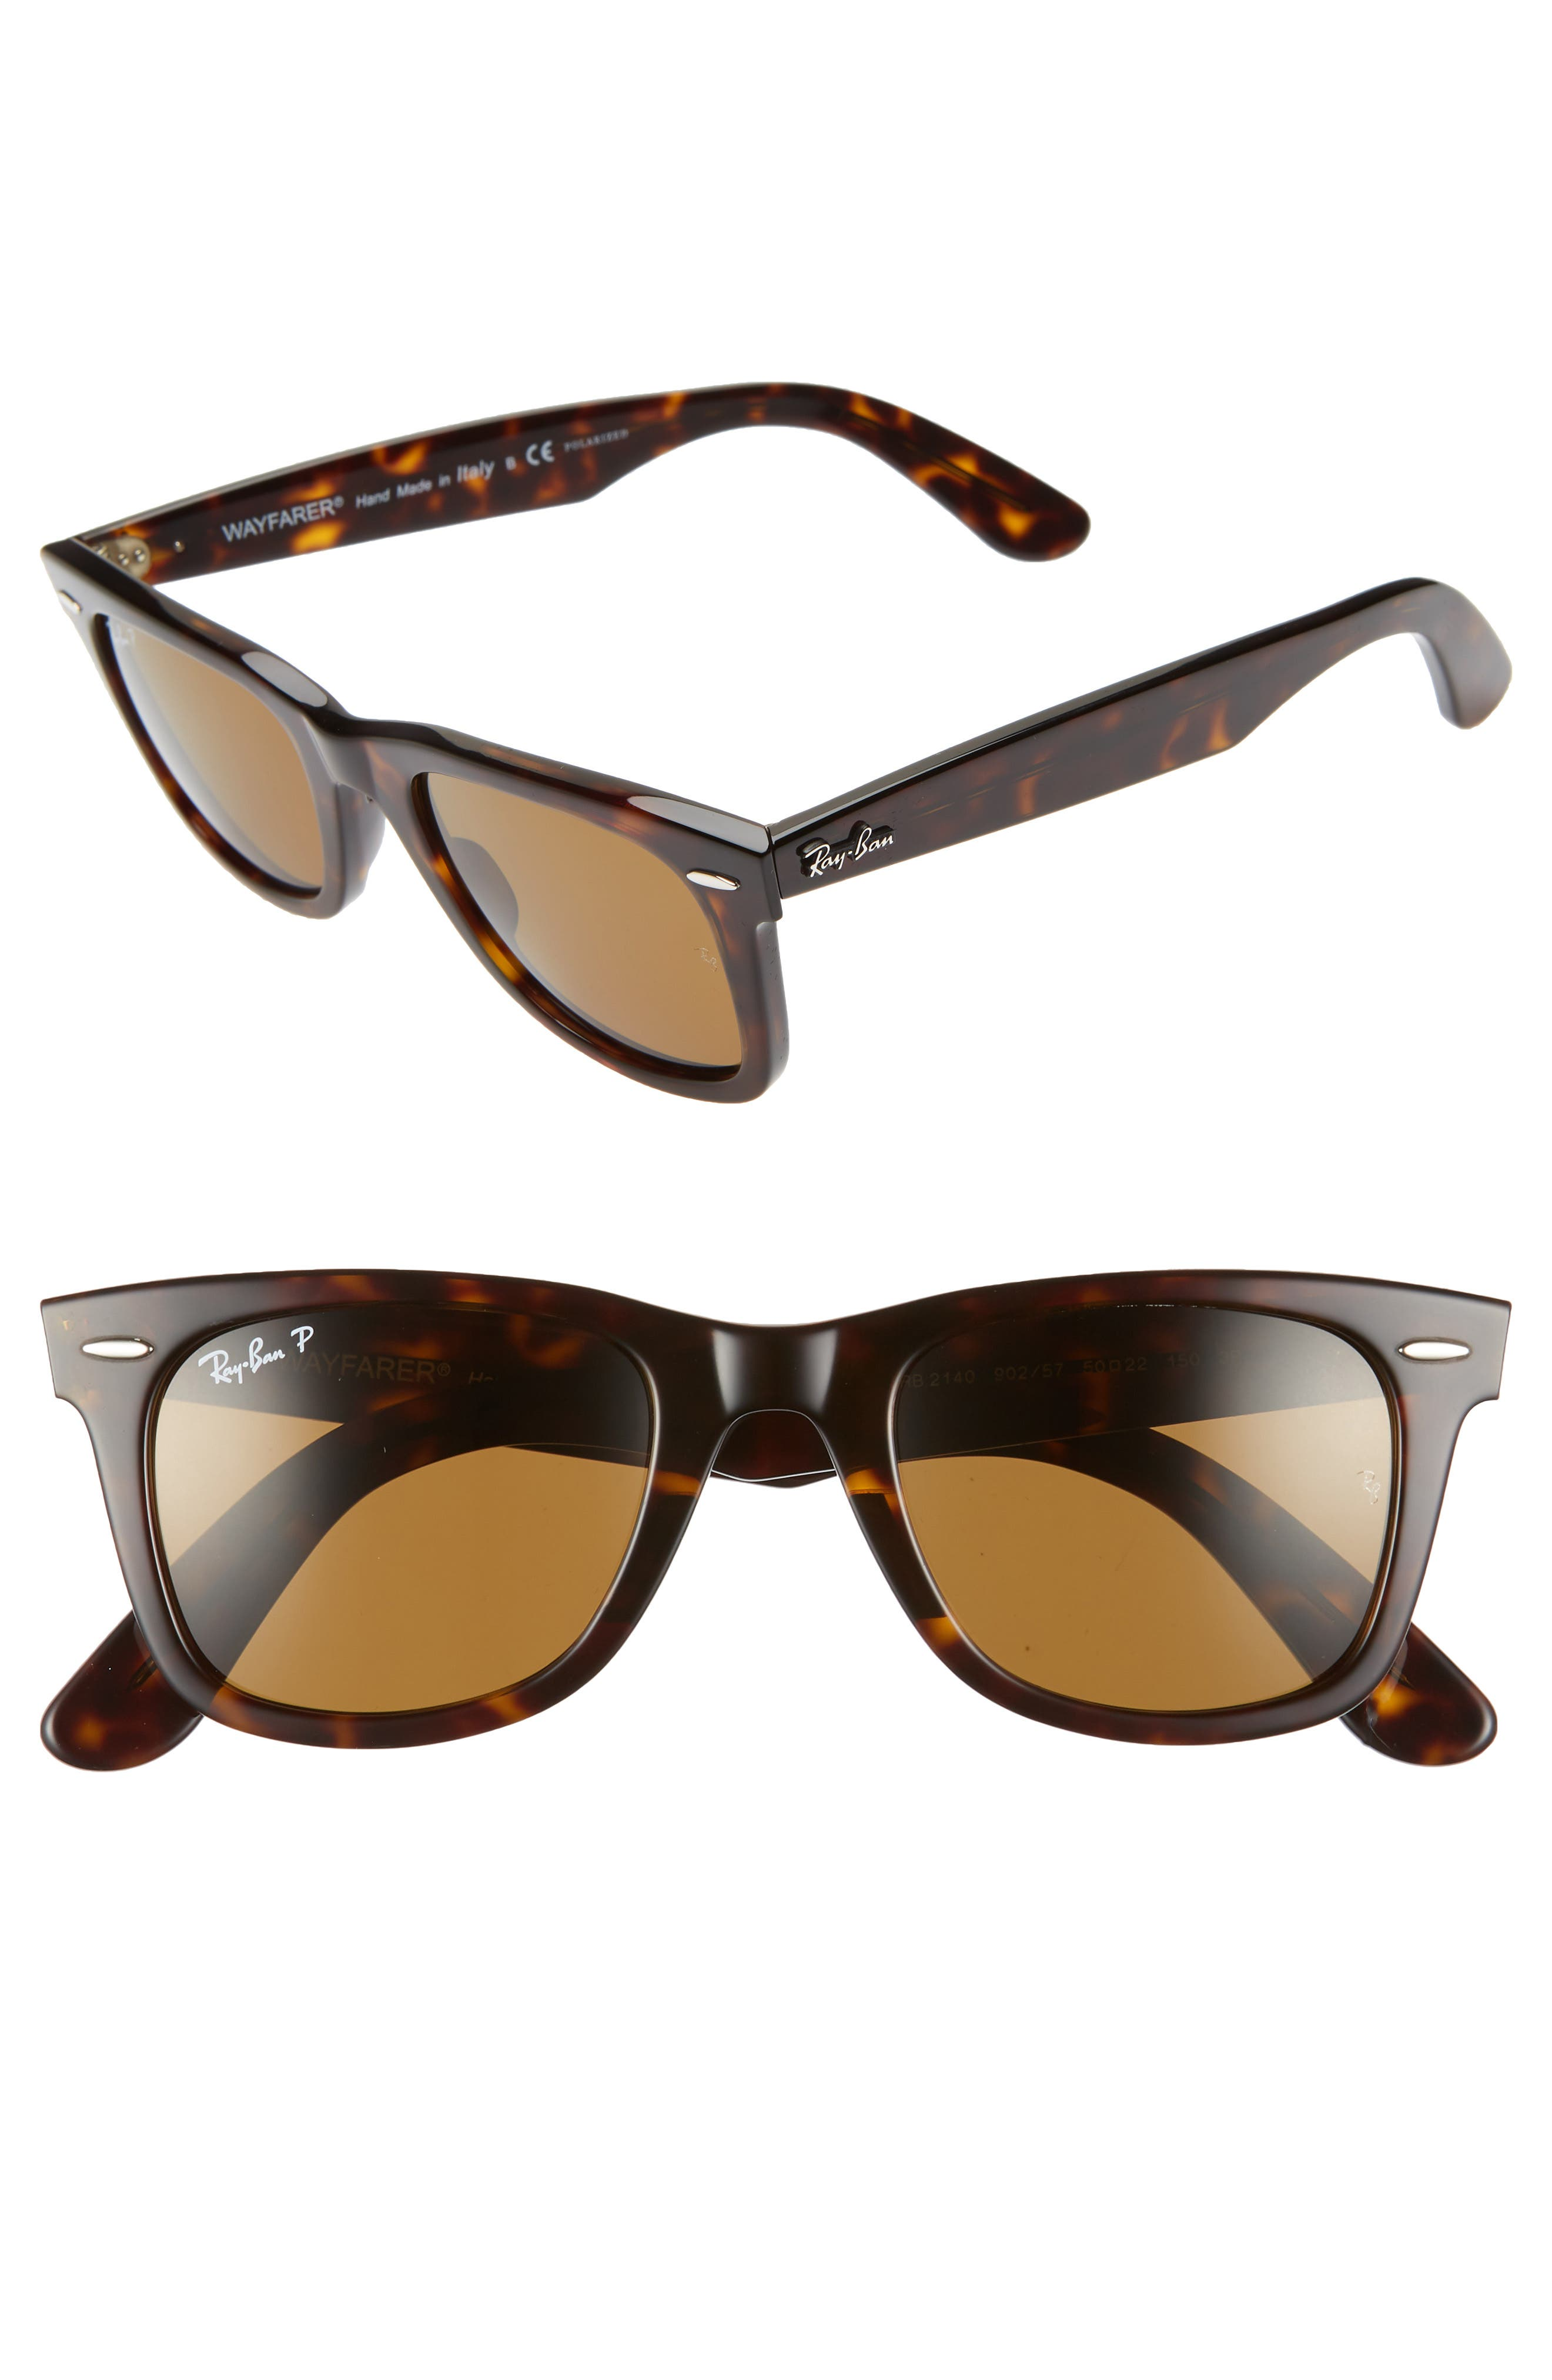 Standard Classic Wayfarer 50mm Polarized Sunglasses,                         Main,                         color, DARK TORTOISE/ BROWN SOLID